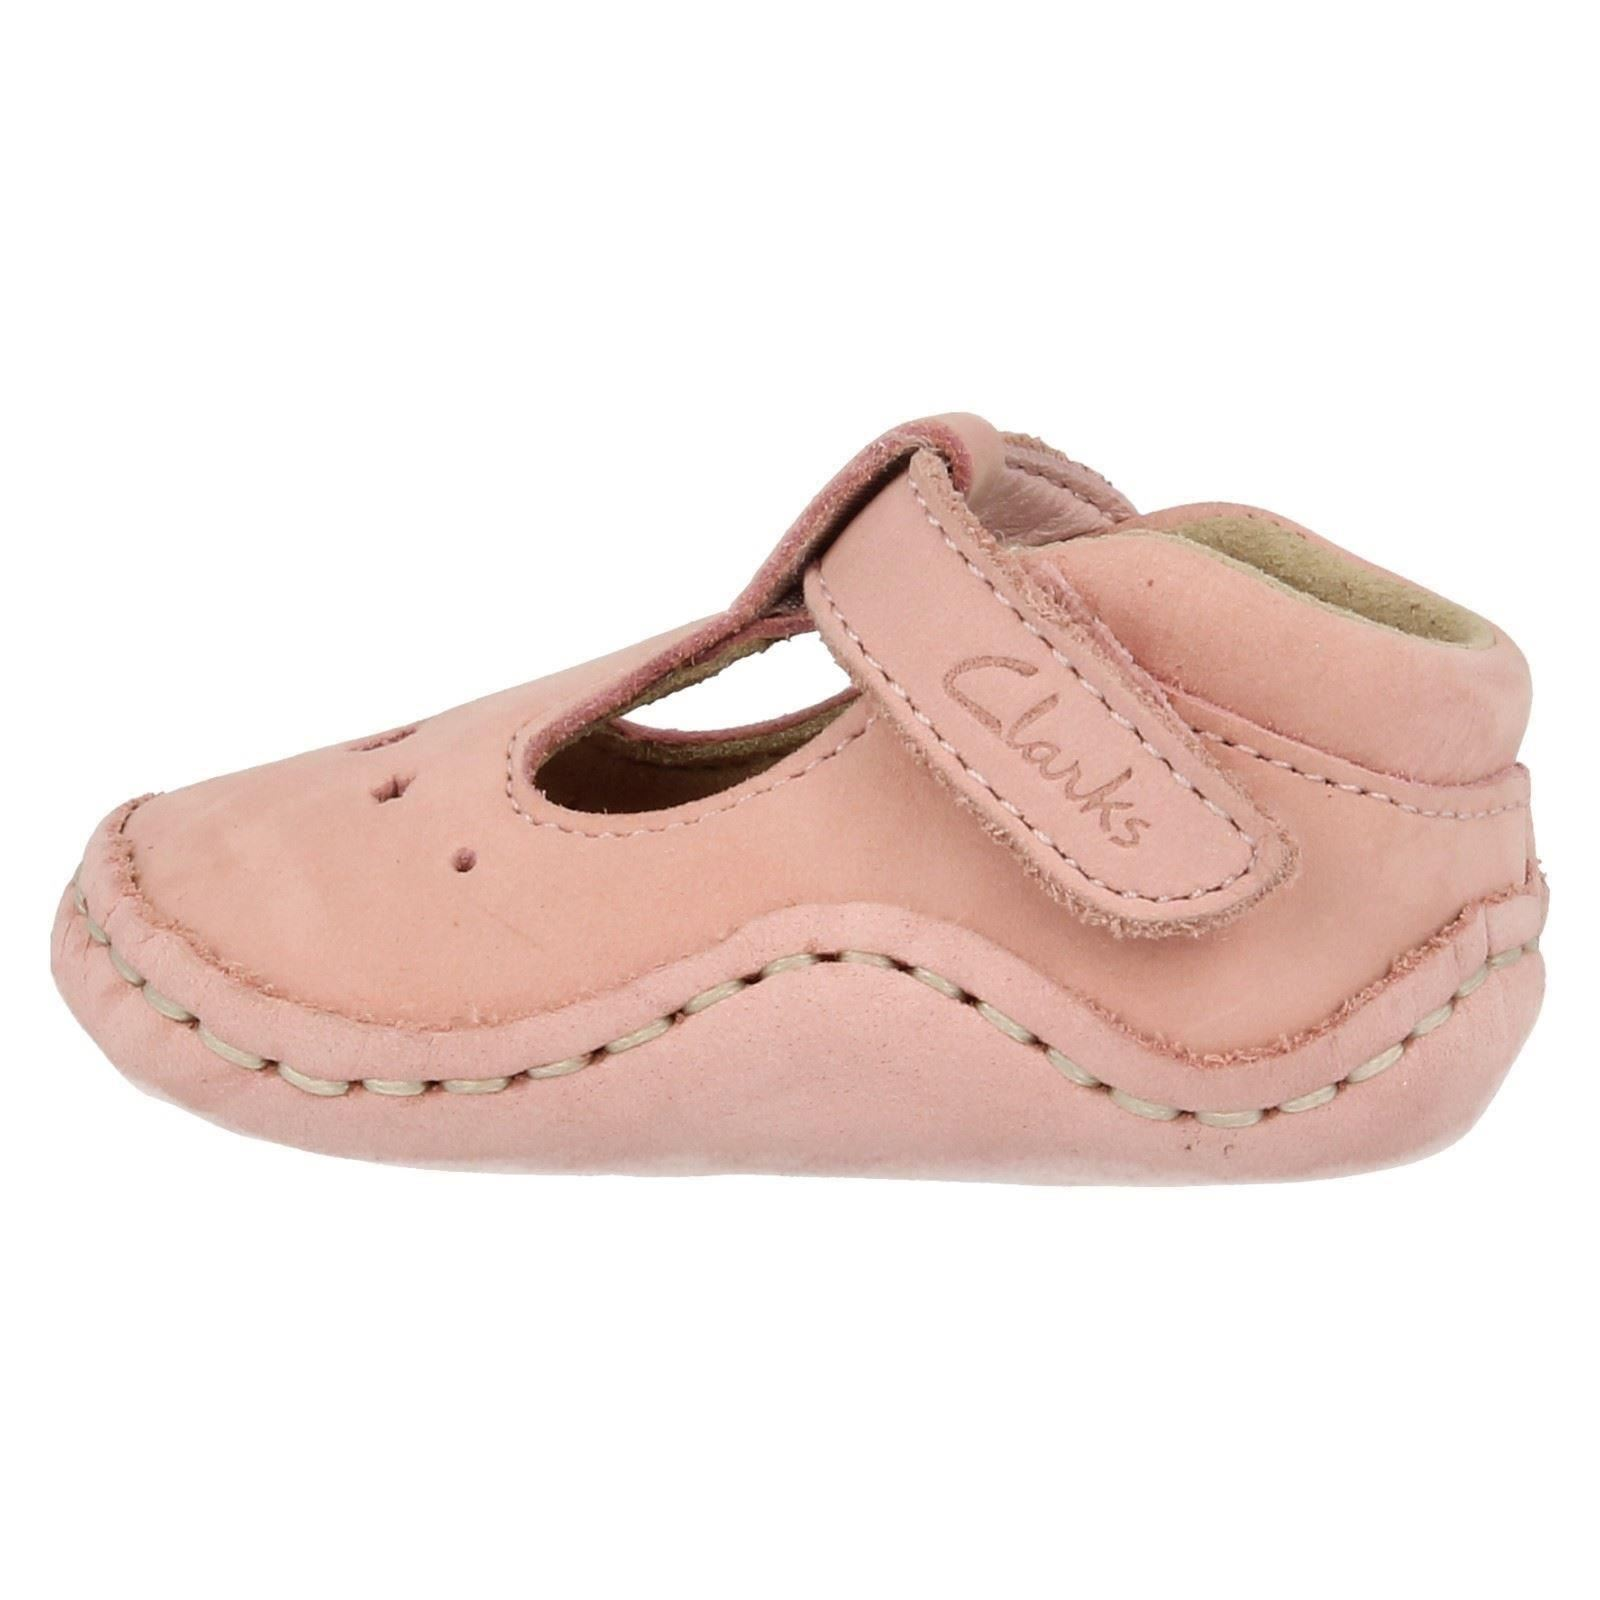 Girls Toddler shoes. Give them the best start in life with our range of girls' toddler shoes. Lightweight, comfortable and flexible, with plenty of support for growing feet. The world is theirs to explore, we make sure every step is done with the freedom to move naturally.